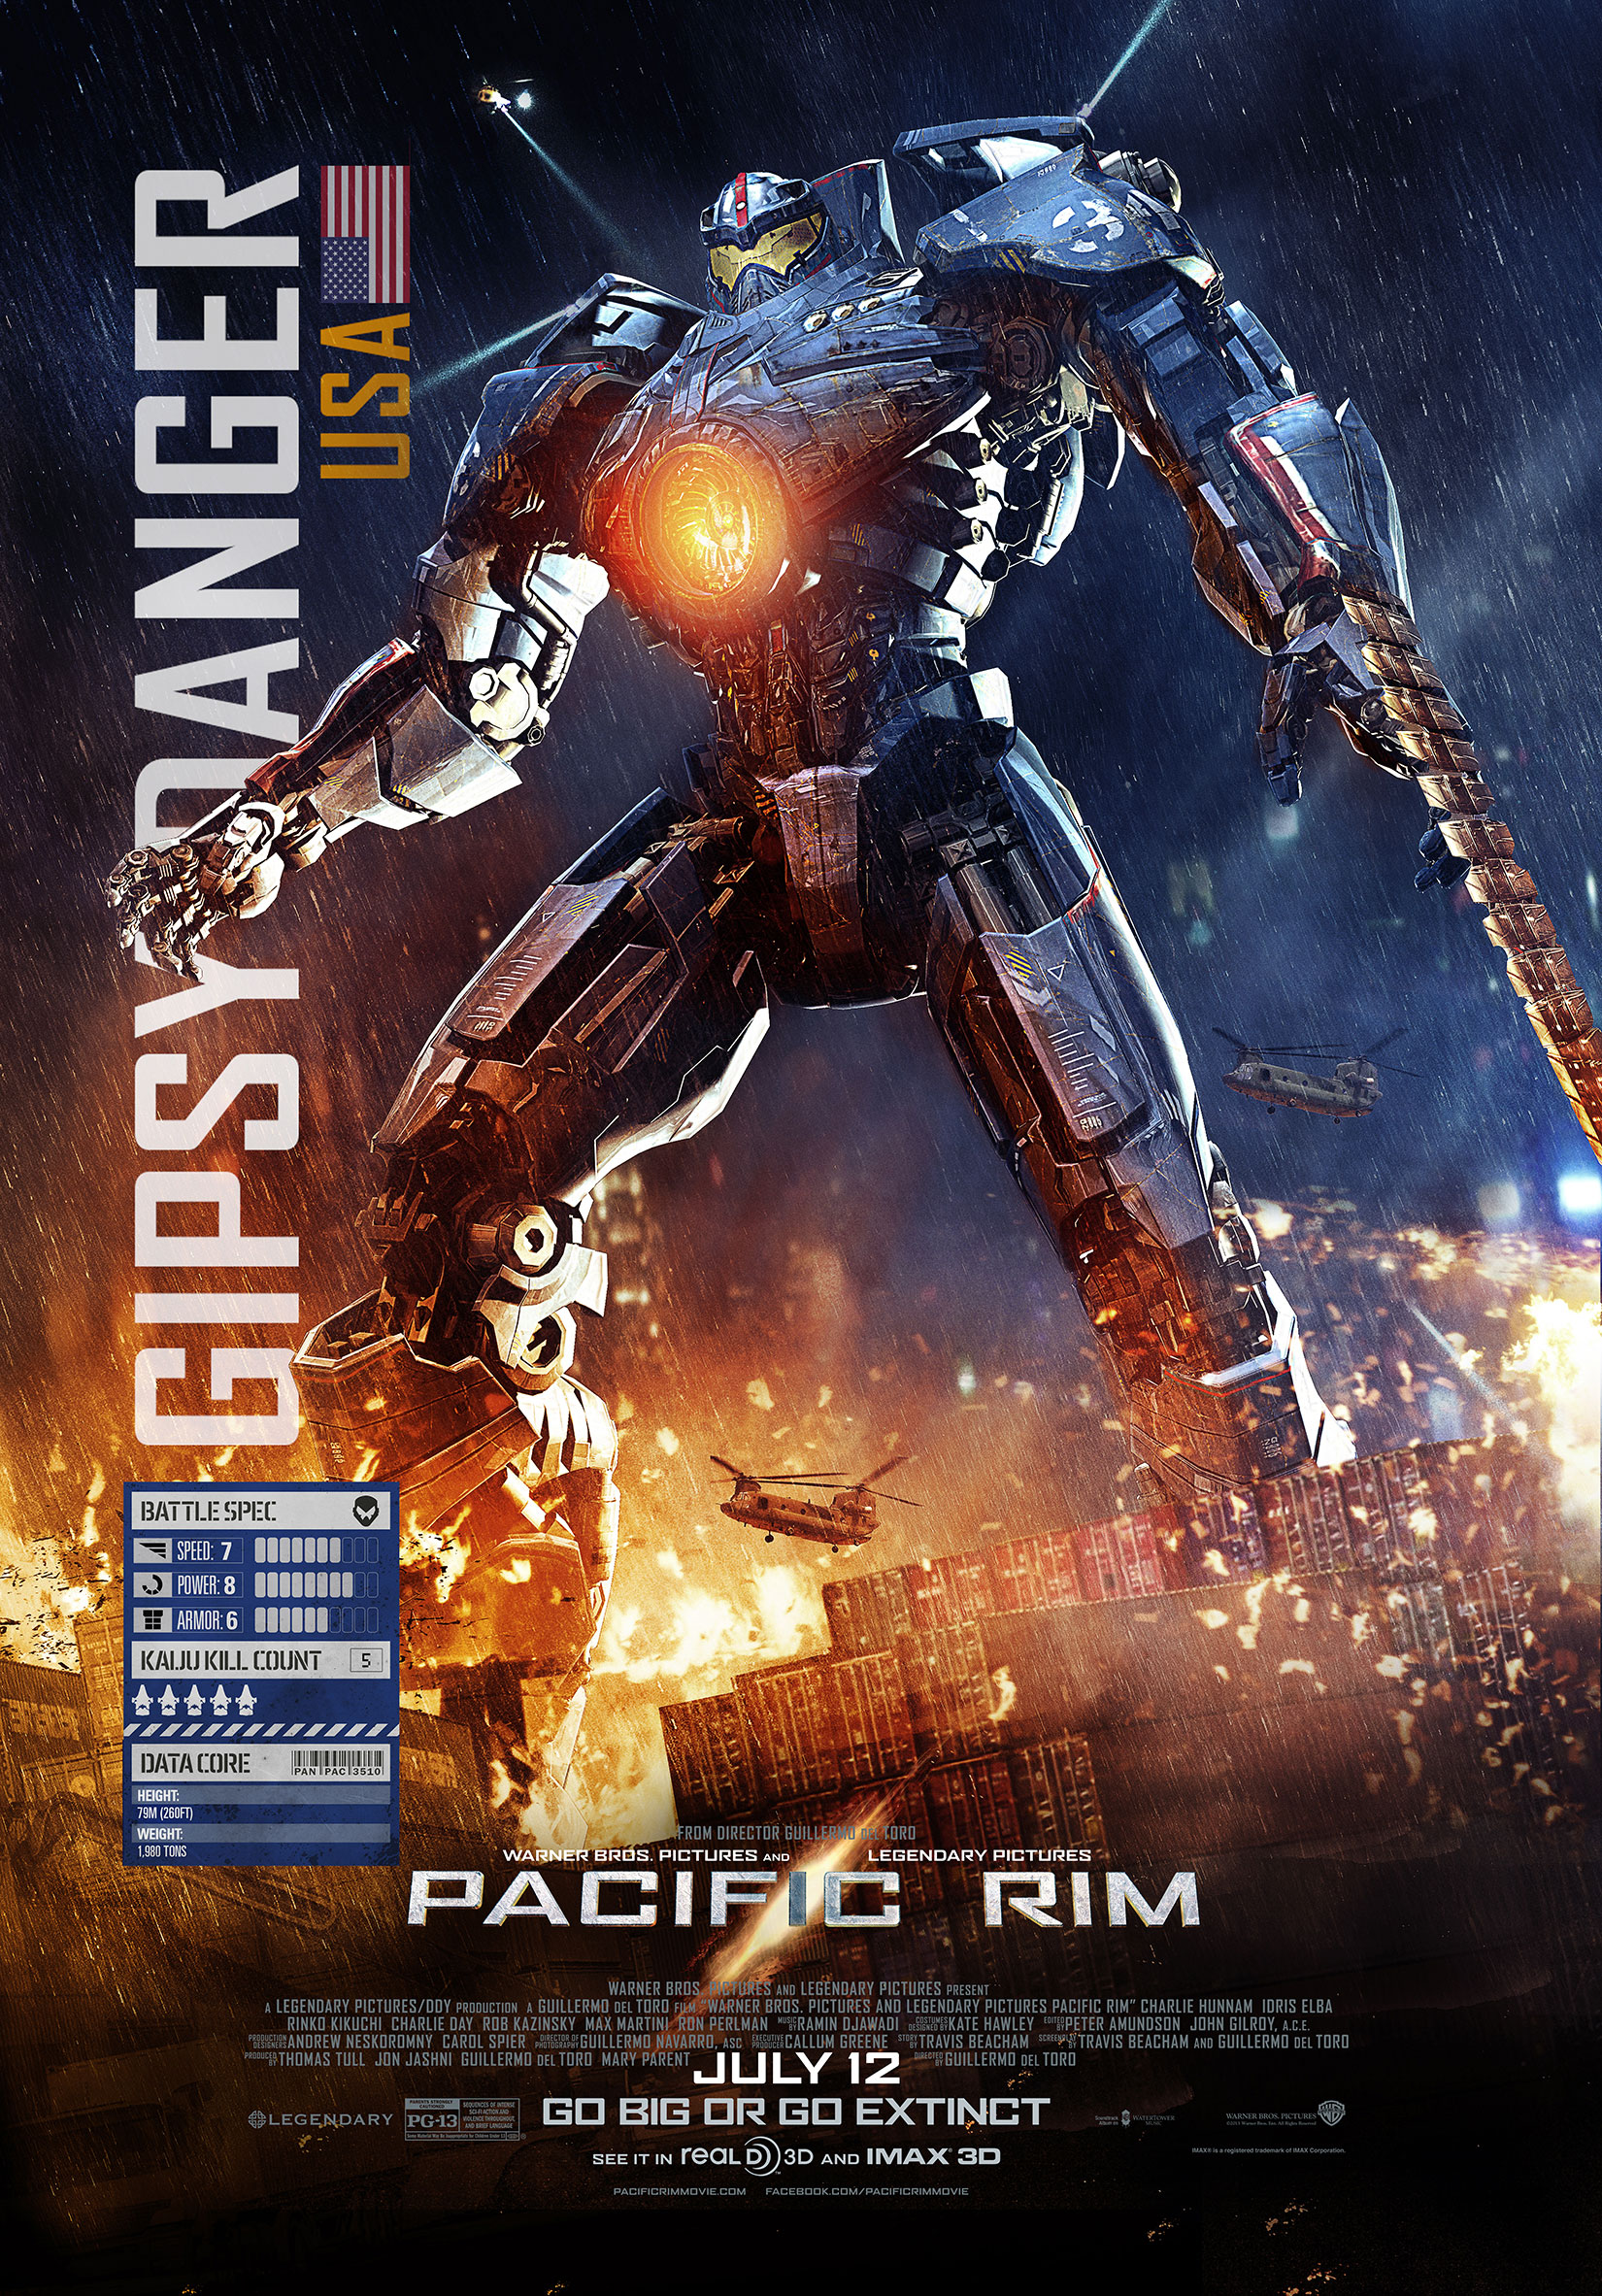 Pacific Rim images Pacific Rim - Poster HD wallpaper and ... Pacific Rim Cover